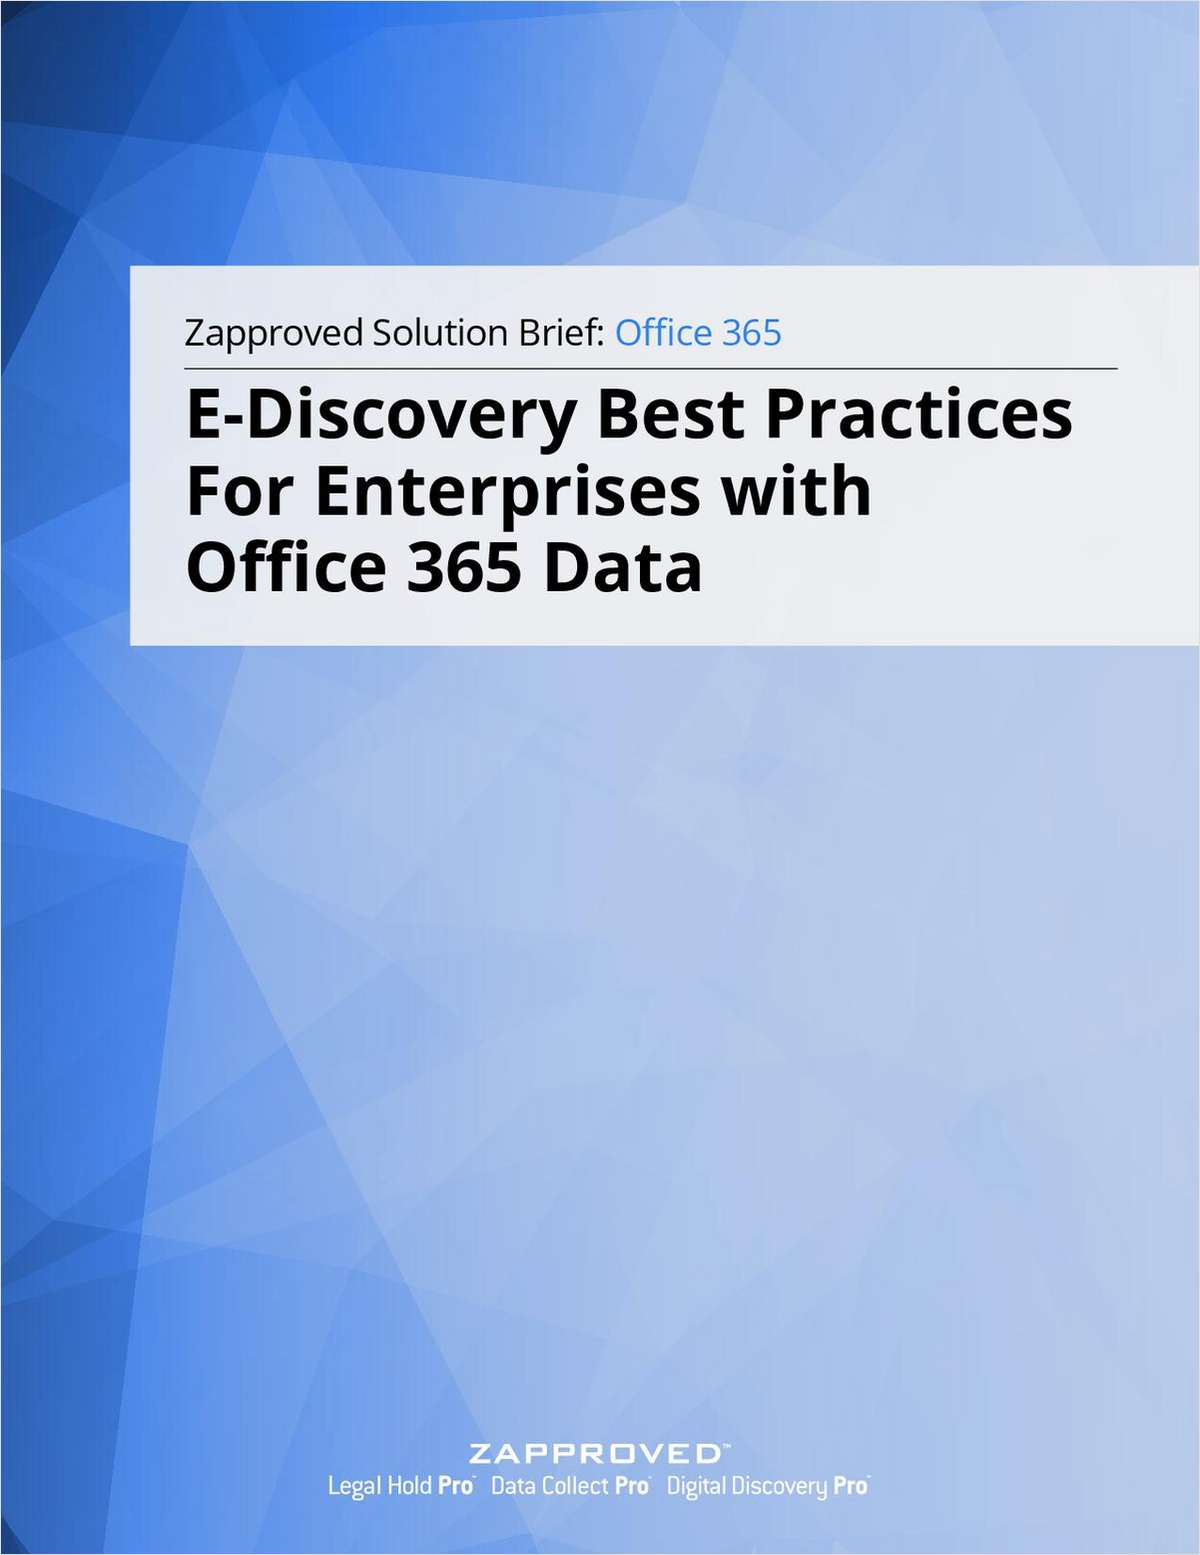 E-Discovery Best Practices for Enterprises with Office 365 Data